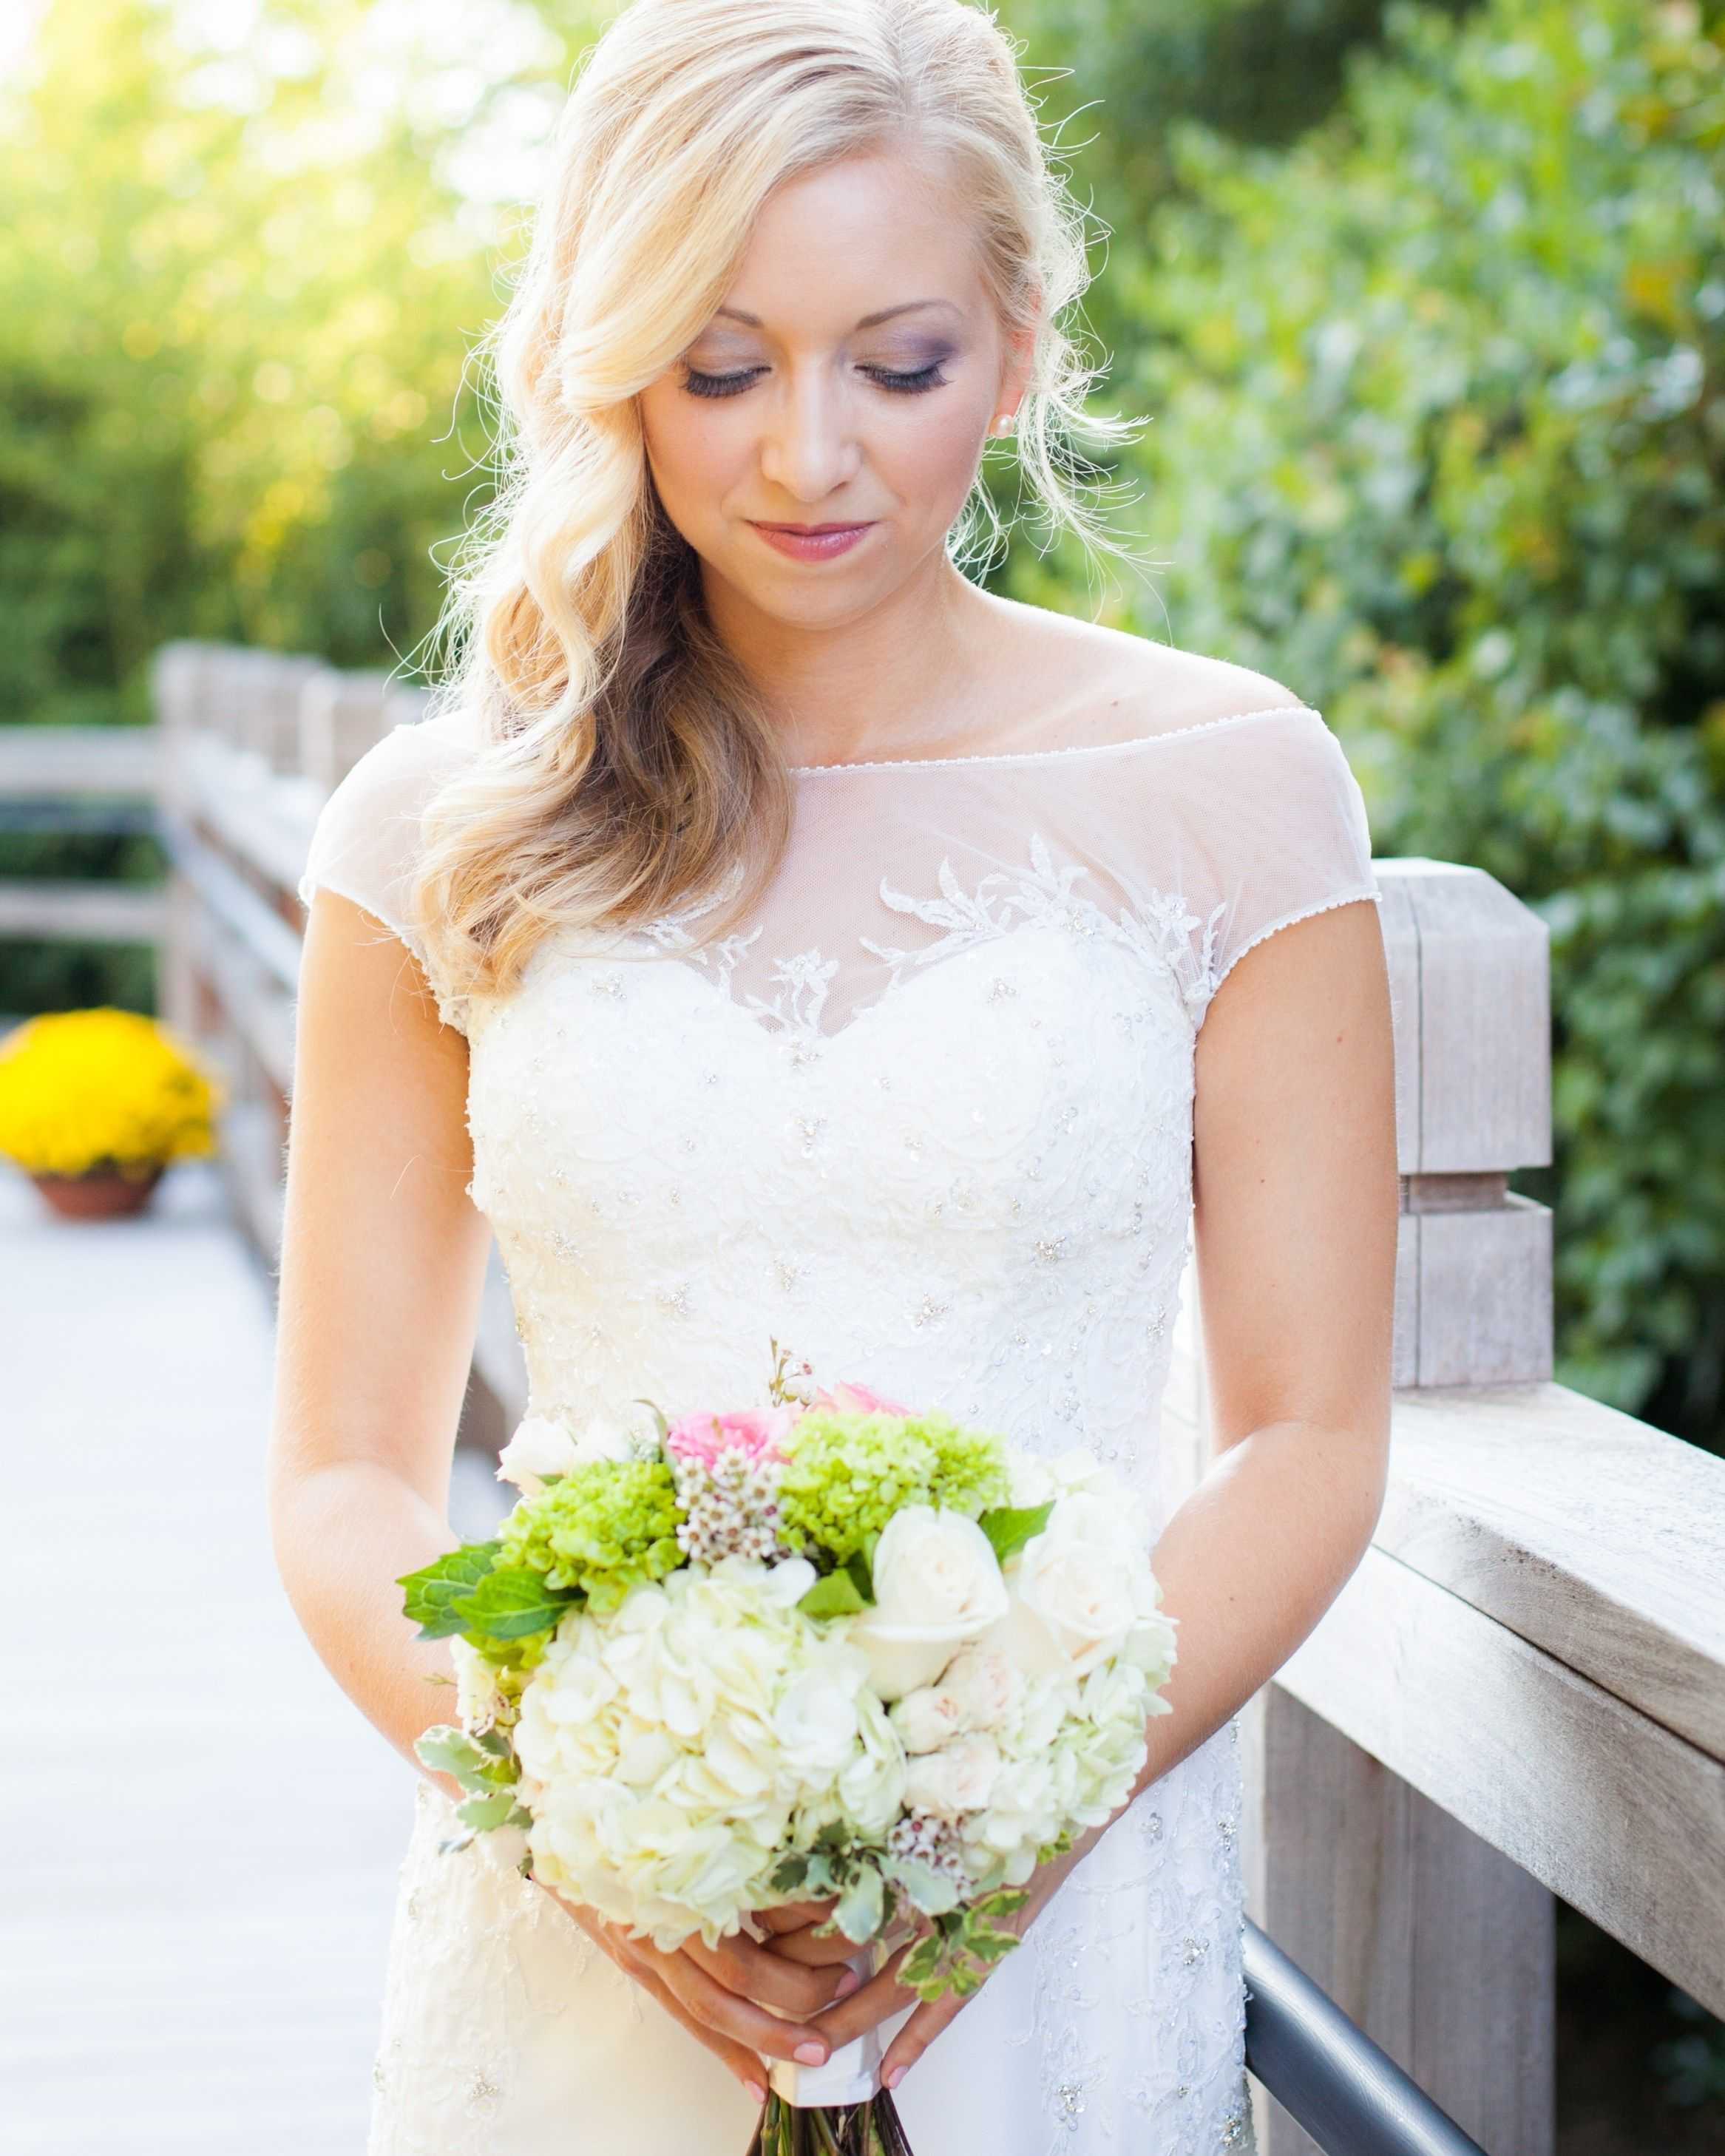 wedding hair and makeup fort worth | hairstyles ideas for me